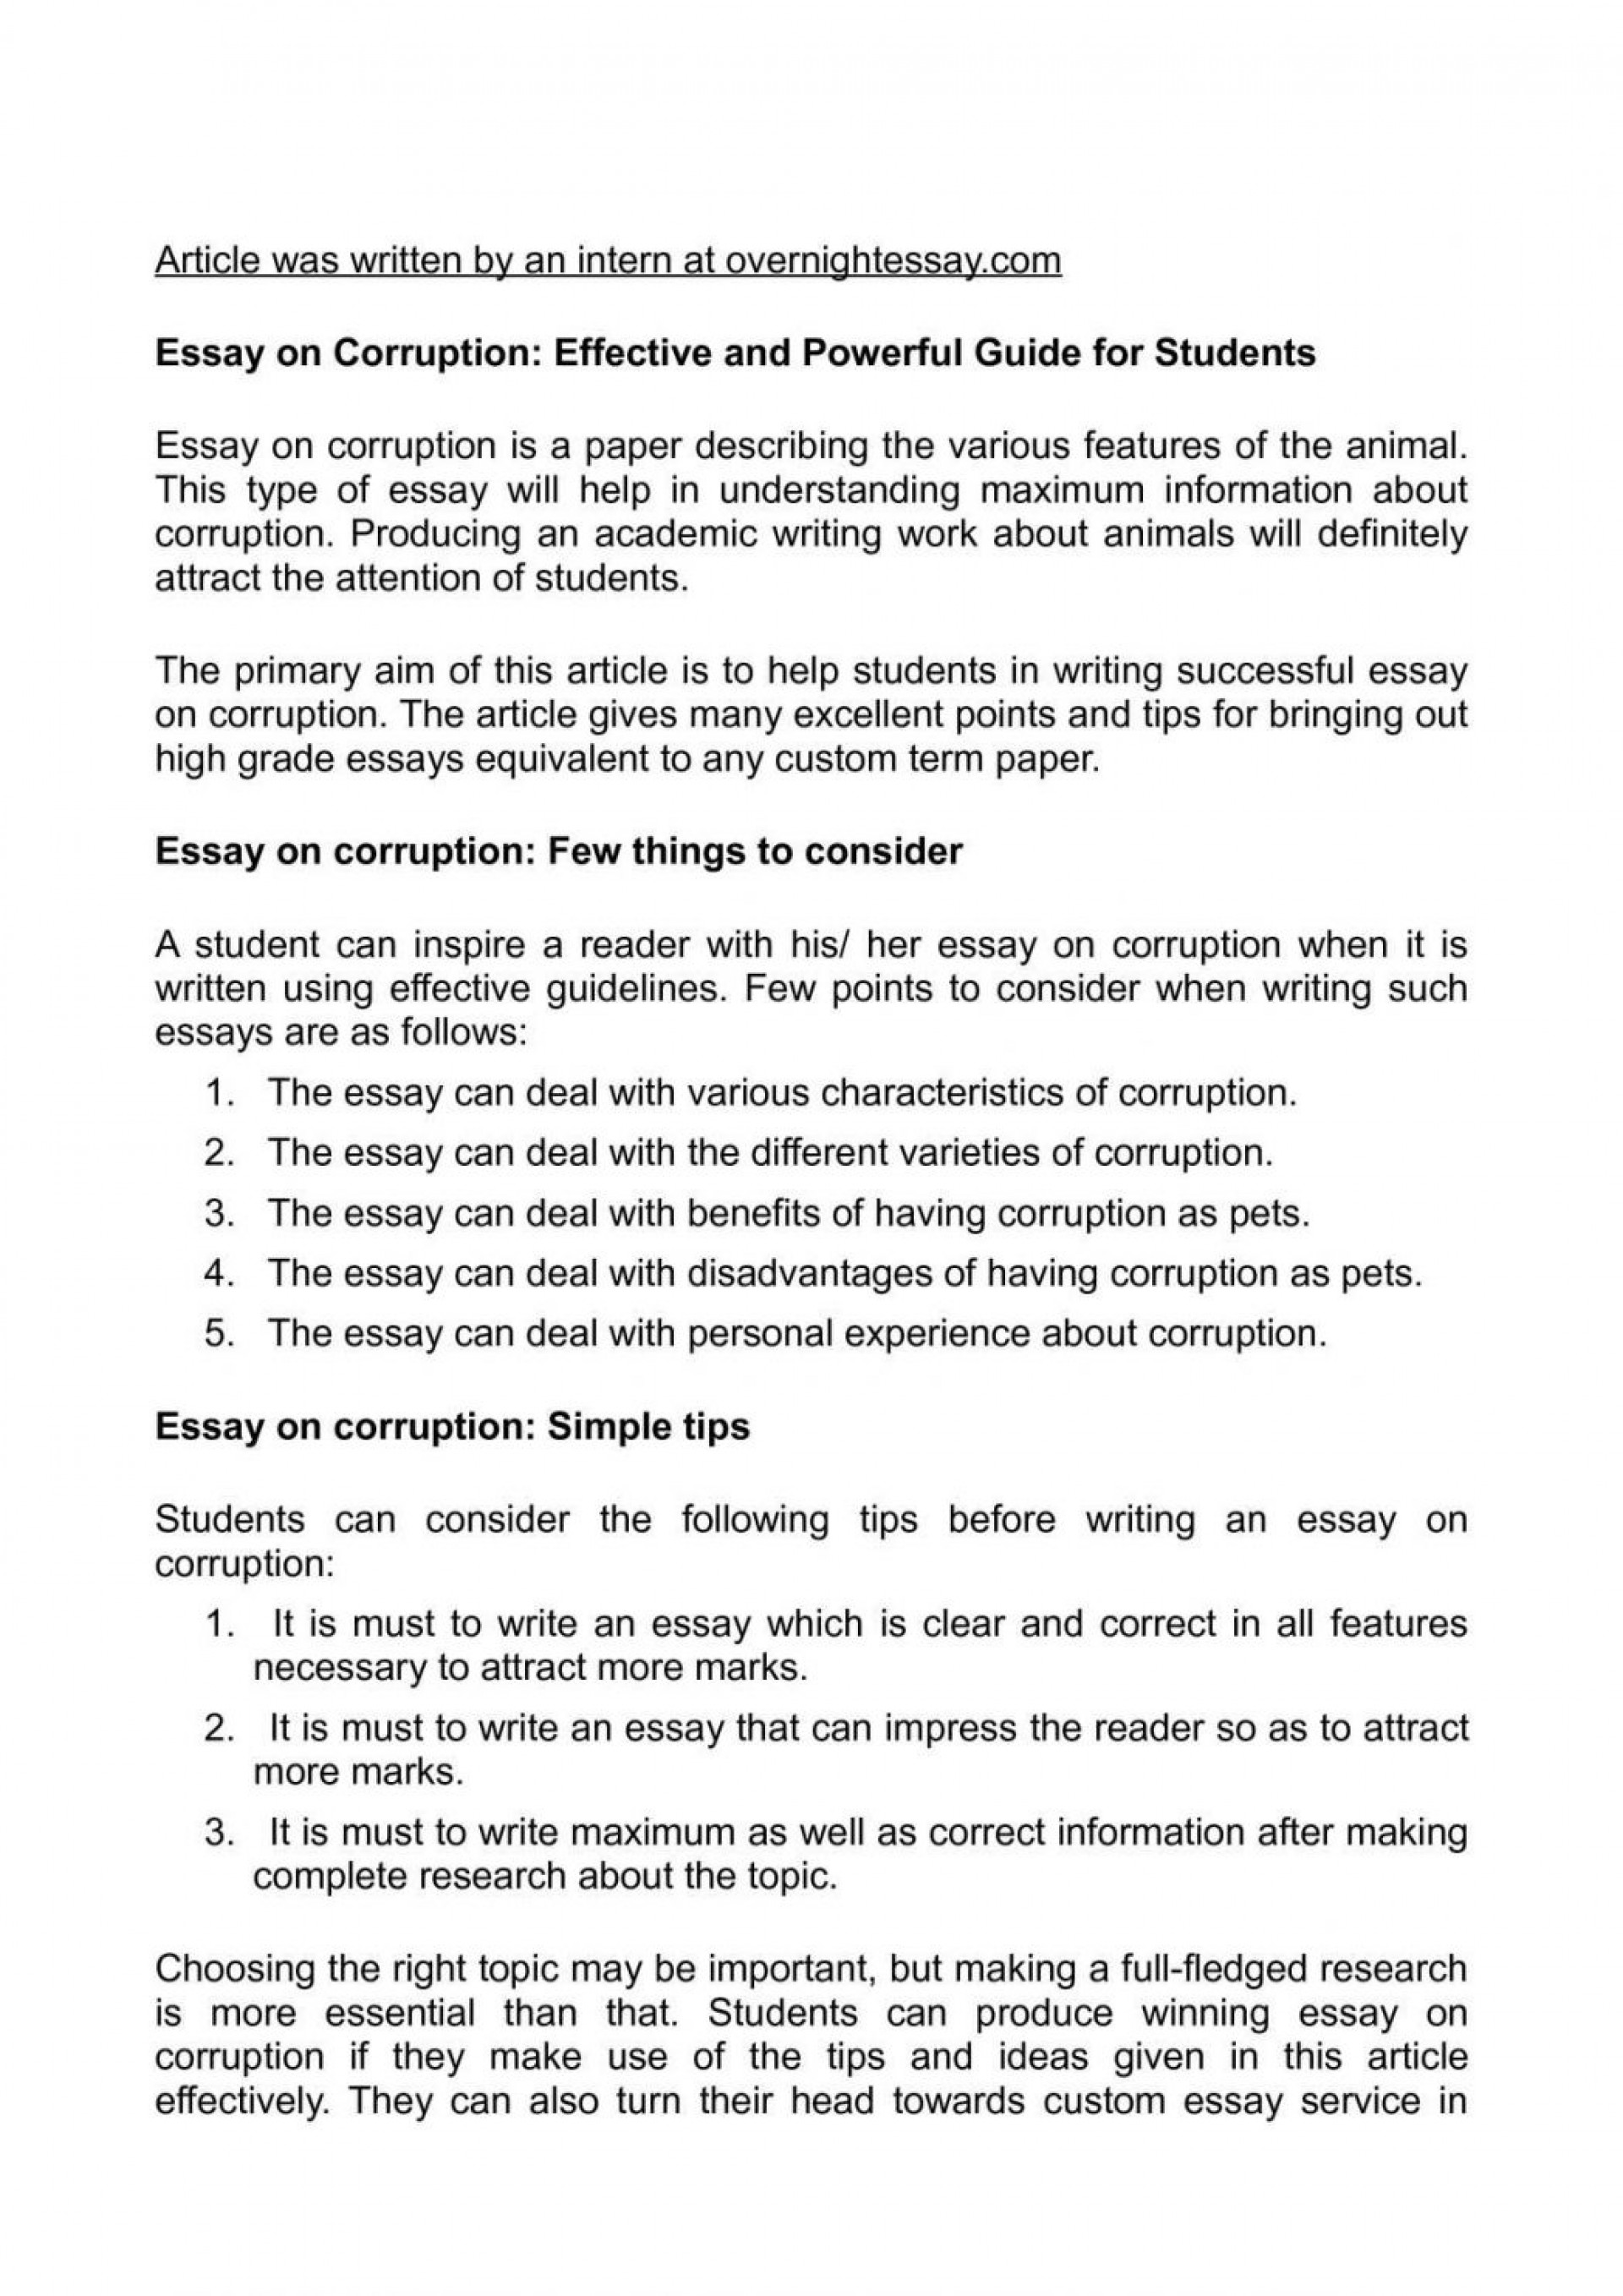 015 How To Write This I Believe Essay Easy Essays Calam Atilde Copy O On Corruption Effective Samples Good Topics Template 1048x1483 Fantastic A What Things 1920